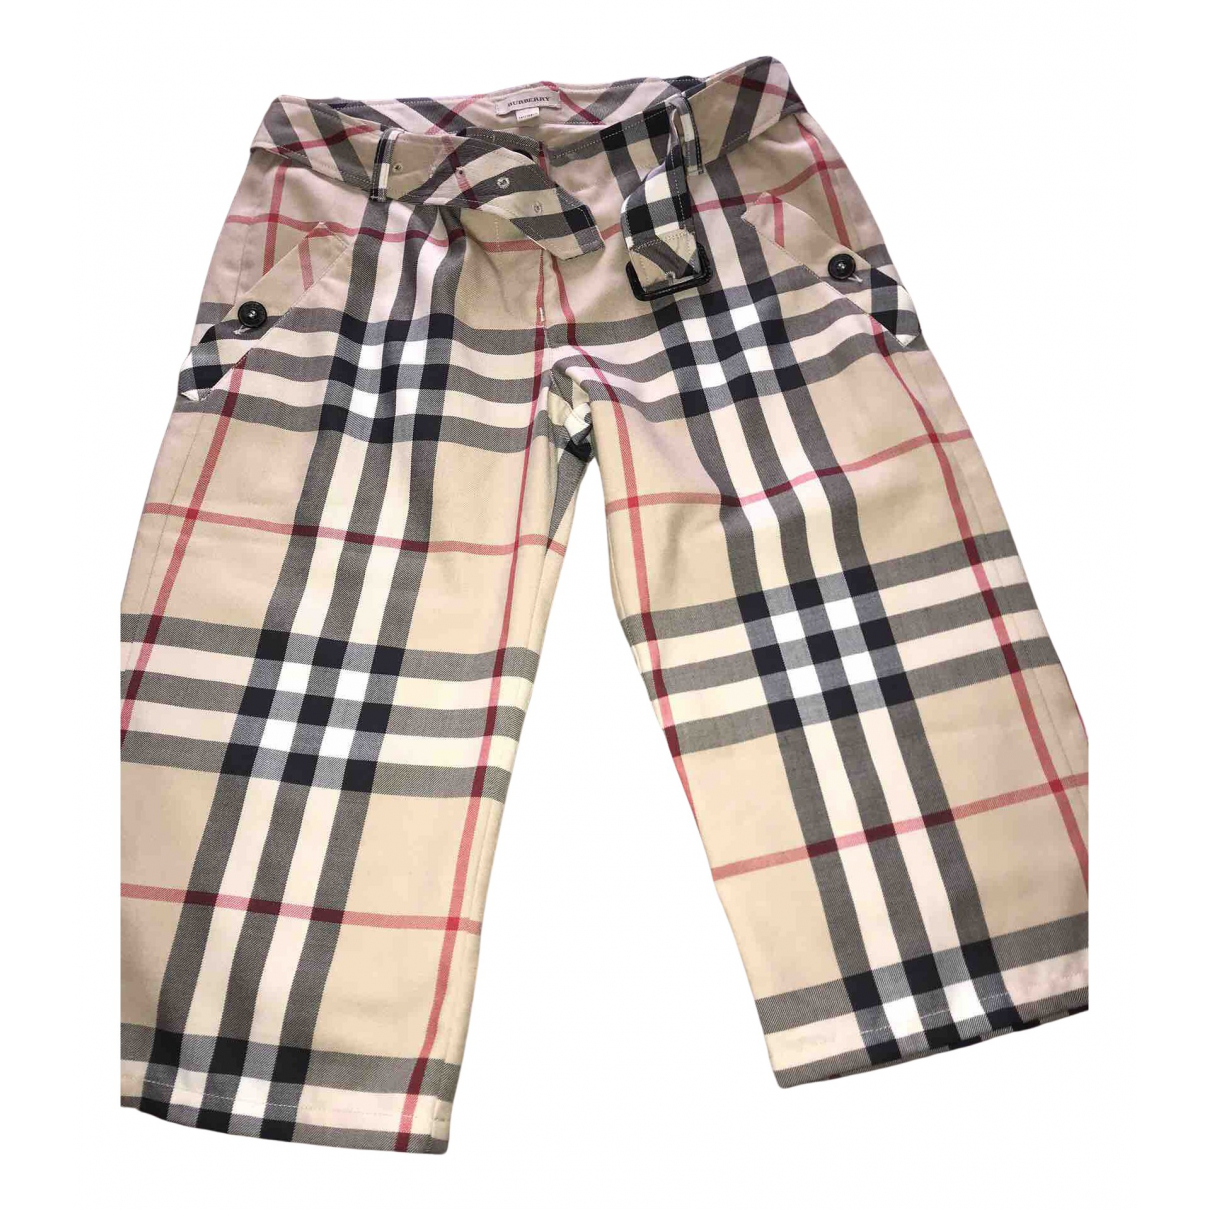 Burberry N Camel Cotton Shorts for Kids 14 years - S FR